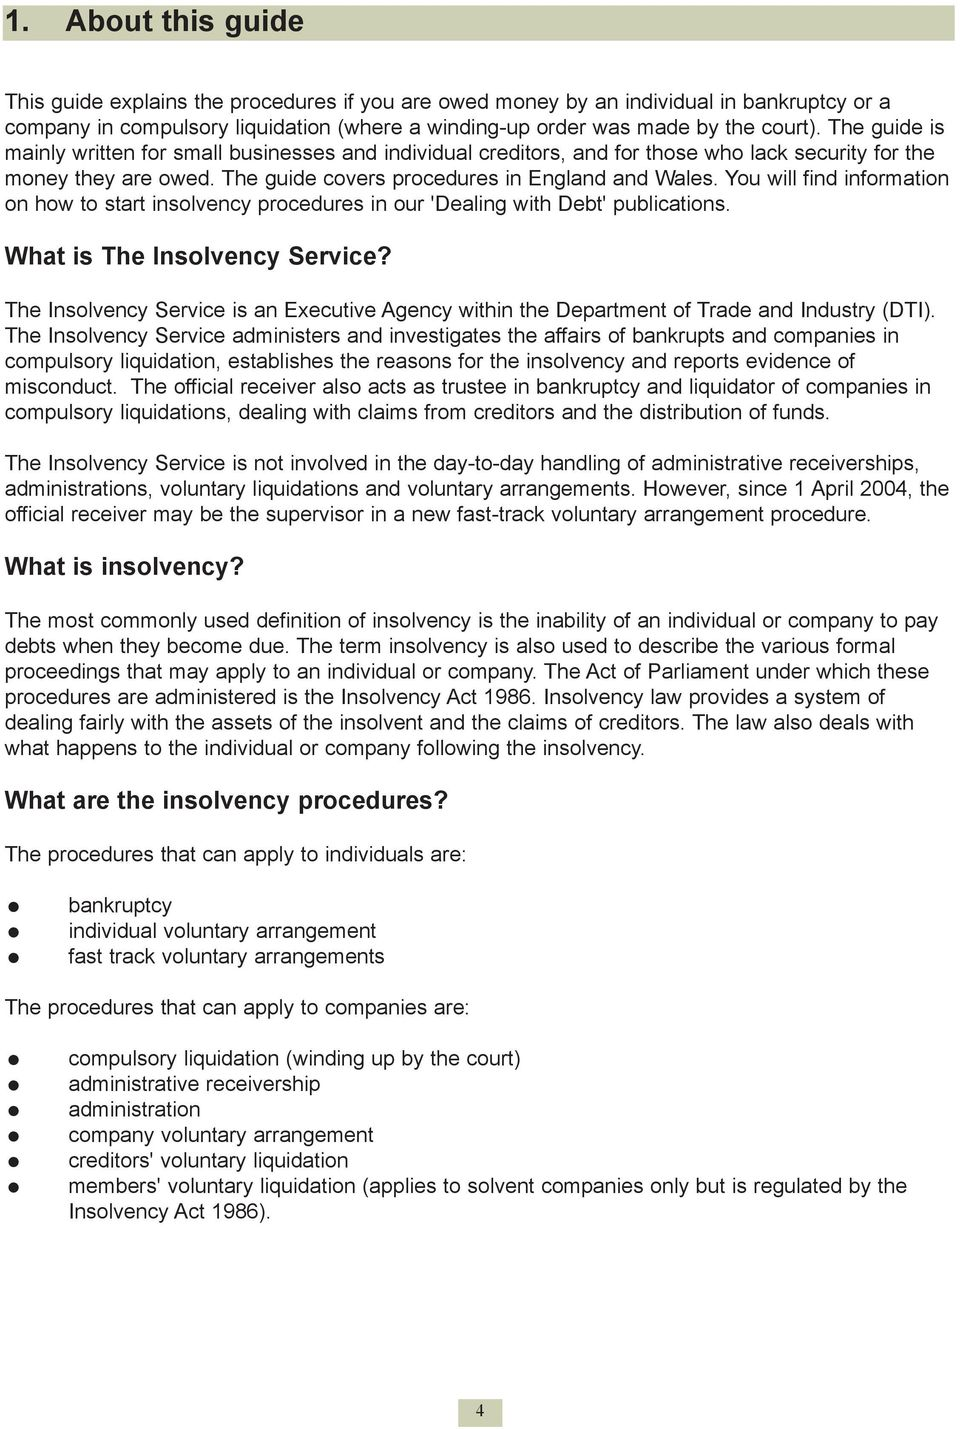 You will find information on how to start insolvency procedures in our 'Dealing with Debt' publications. What is The Insolvency Service?